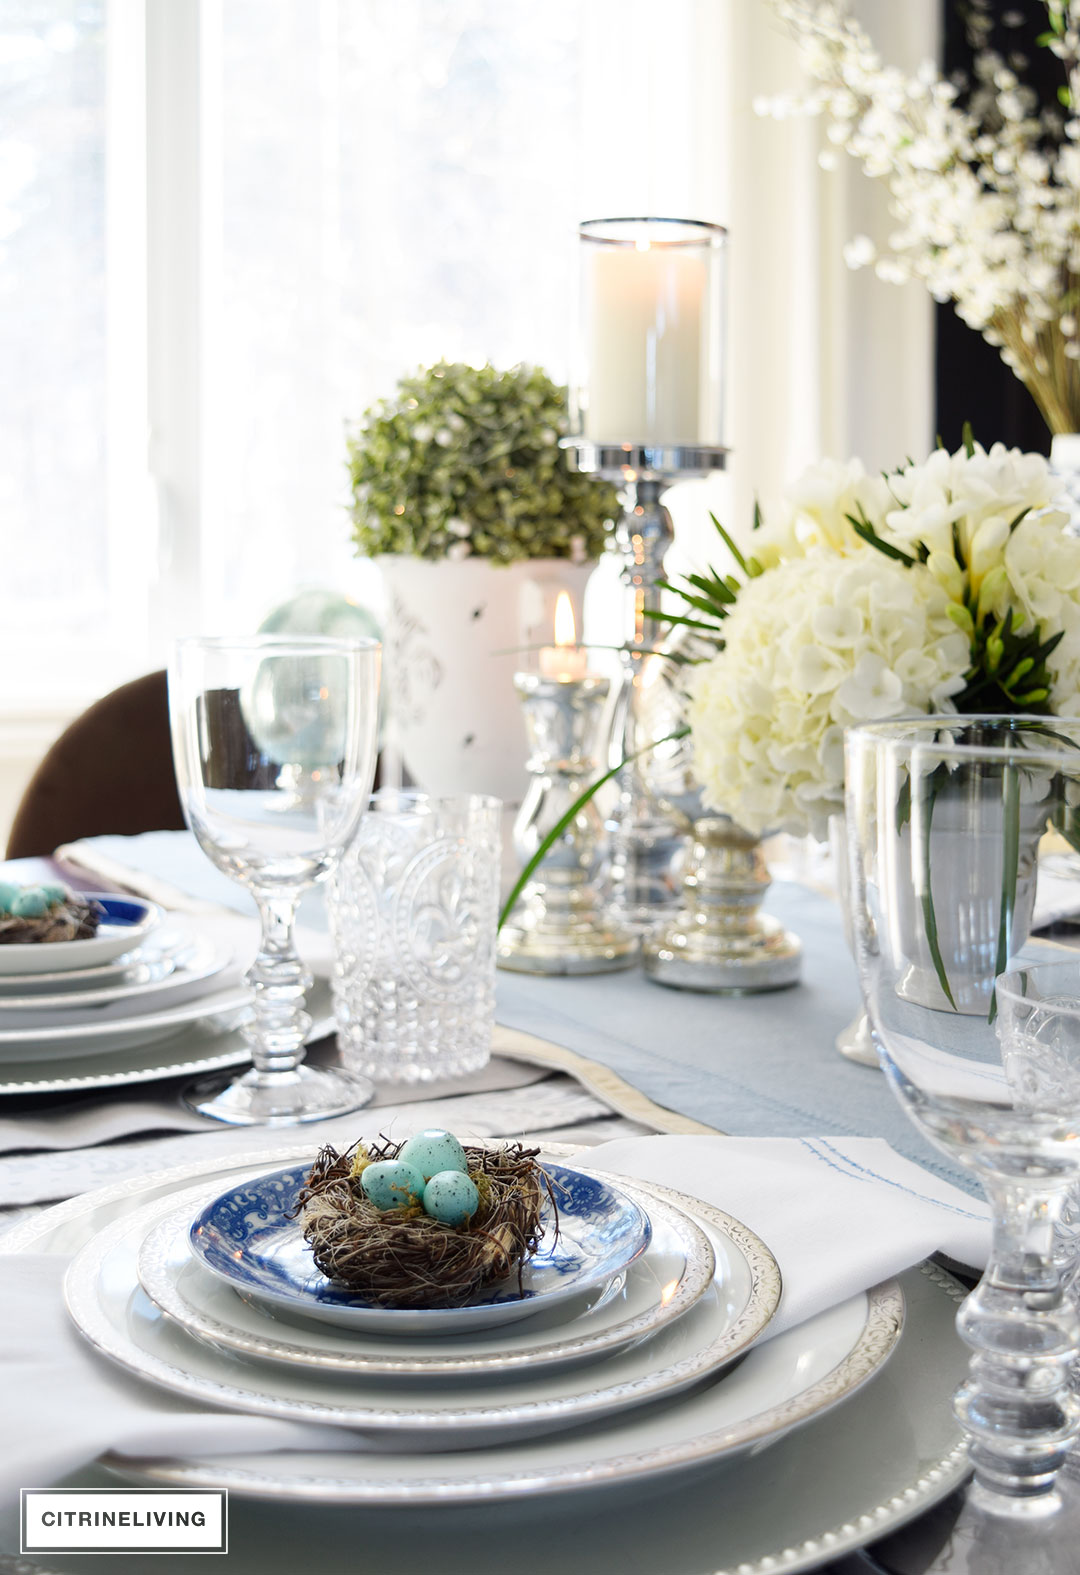 Elegant Easter and Spring tablespcae with mercury glass accents, mixed with fresh and faux florals and greenery. Blue and white china add a classic element.